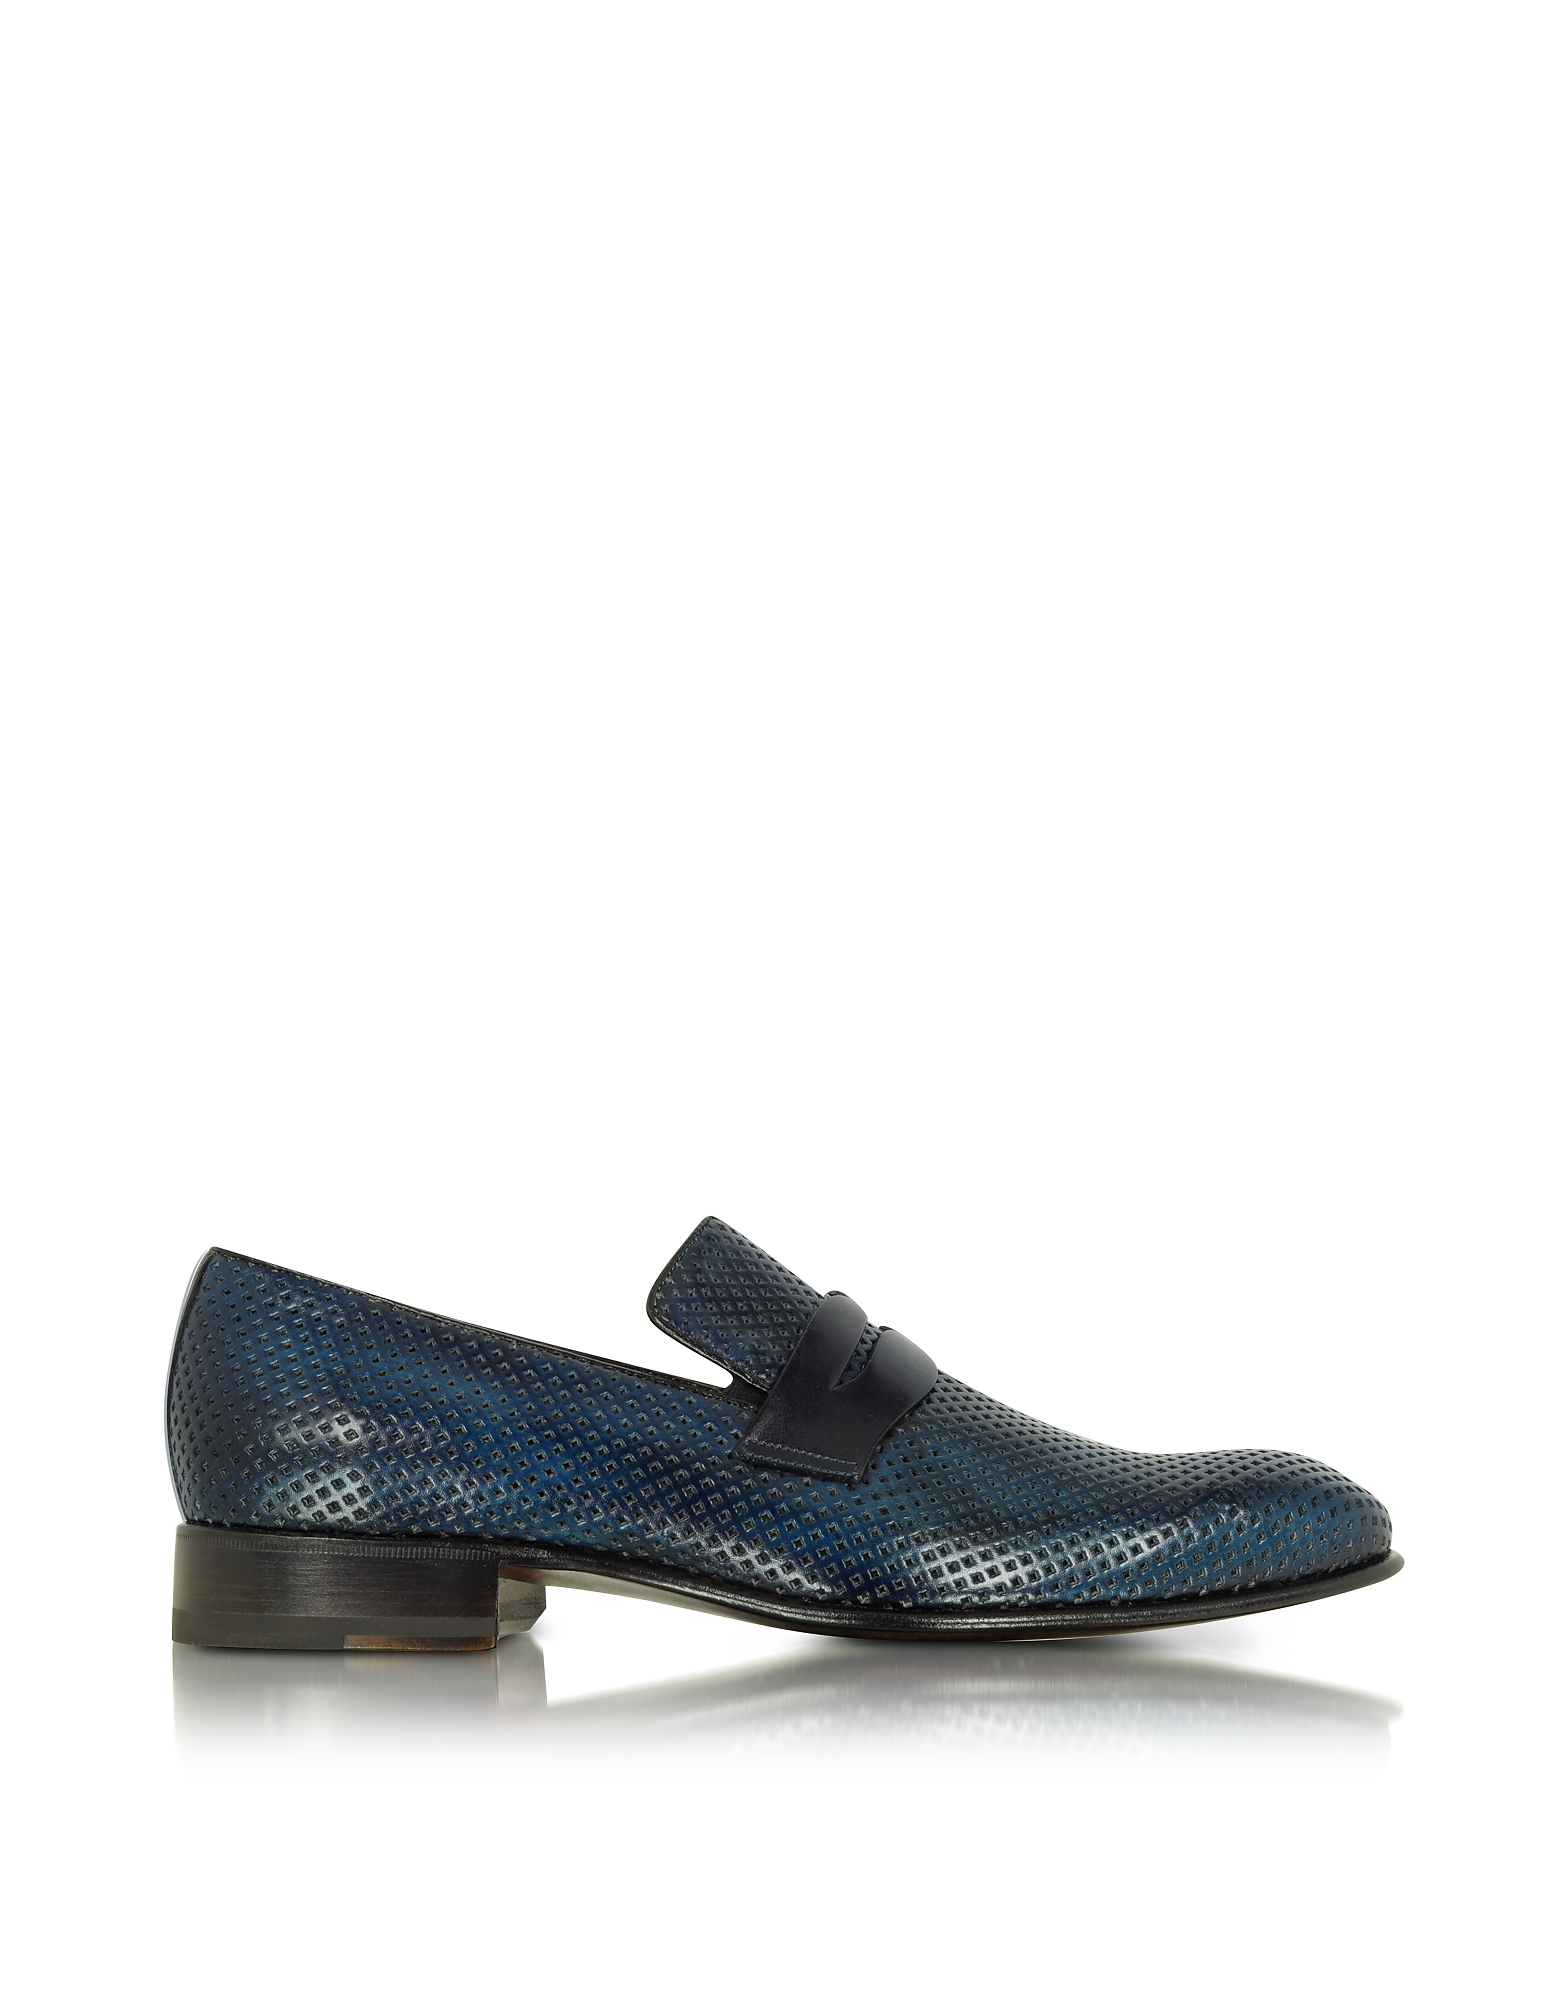 Forzieri Shoes, Italian Handcrafted Ocean Blue Perforated Leather Loafer Shoe